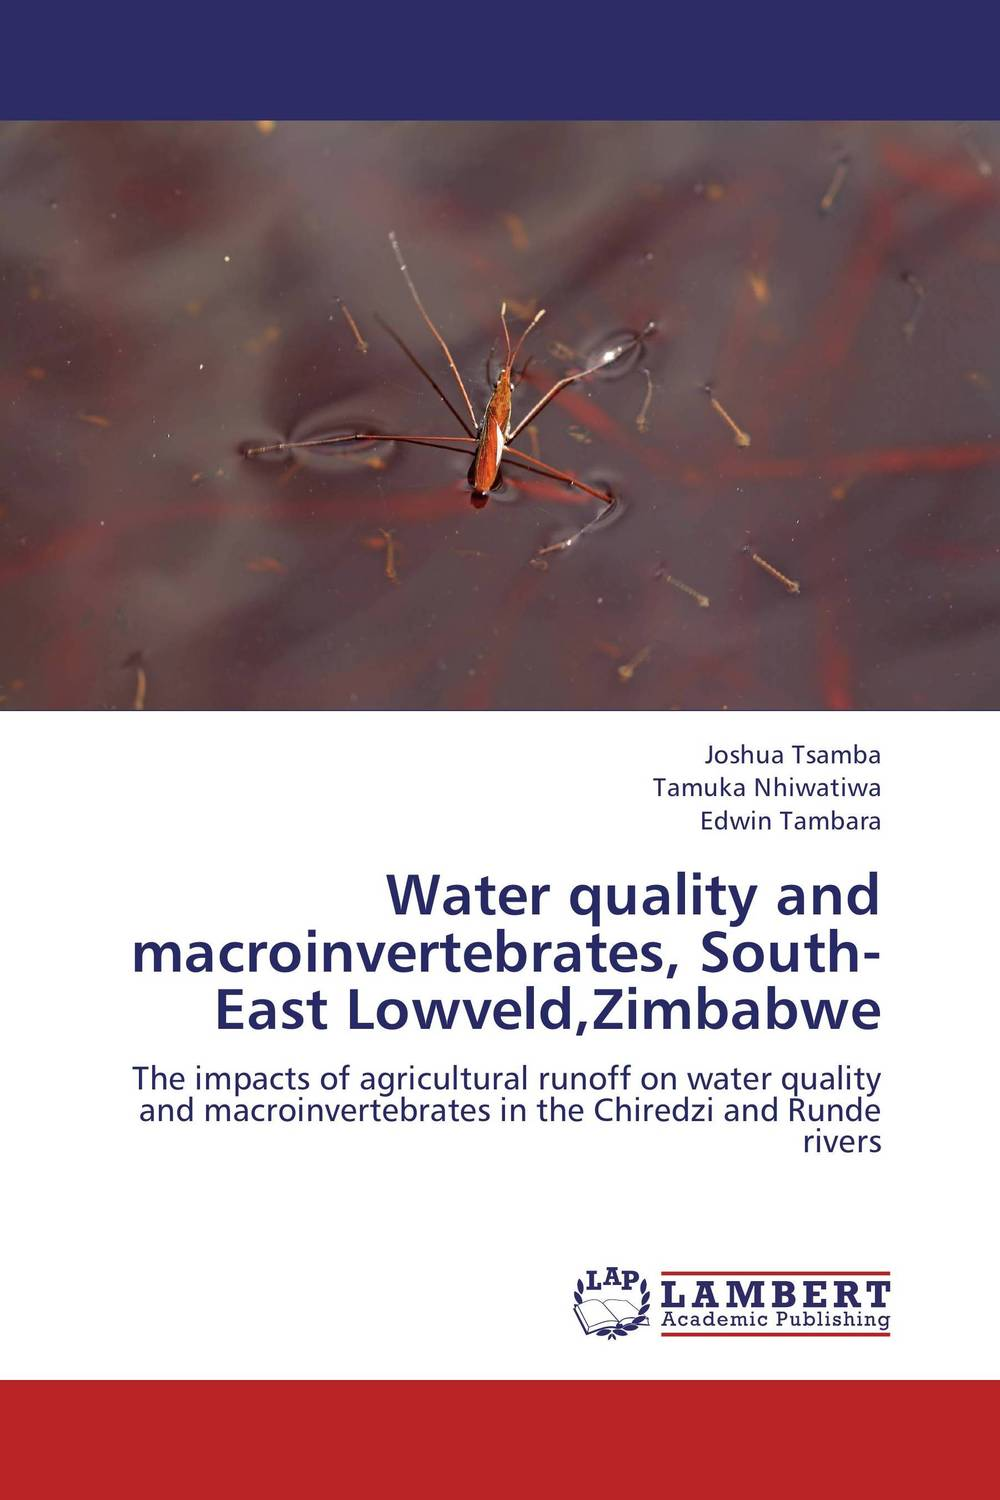 Water quality and macroinvertebrates, South-East Lowveld,Zimbabwe